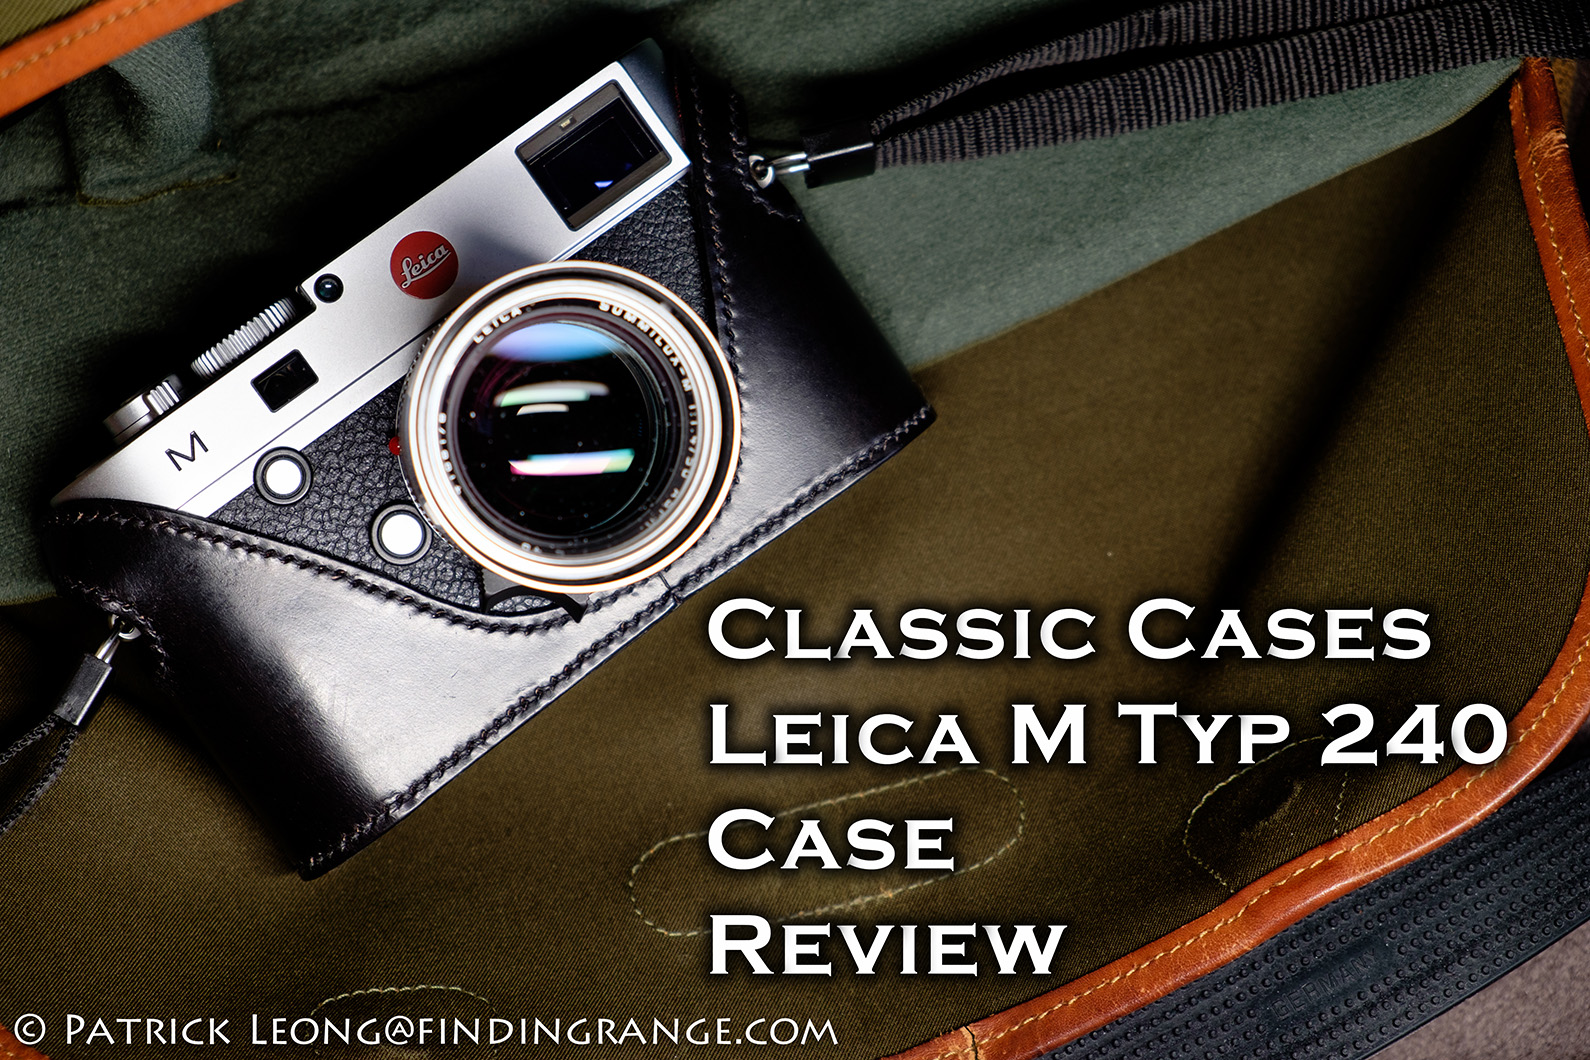 Classic-Cases-UK-Leica-M-Typ-240-Case-Review-1